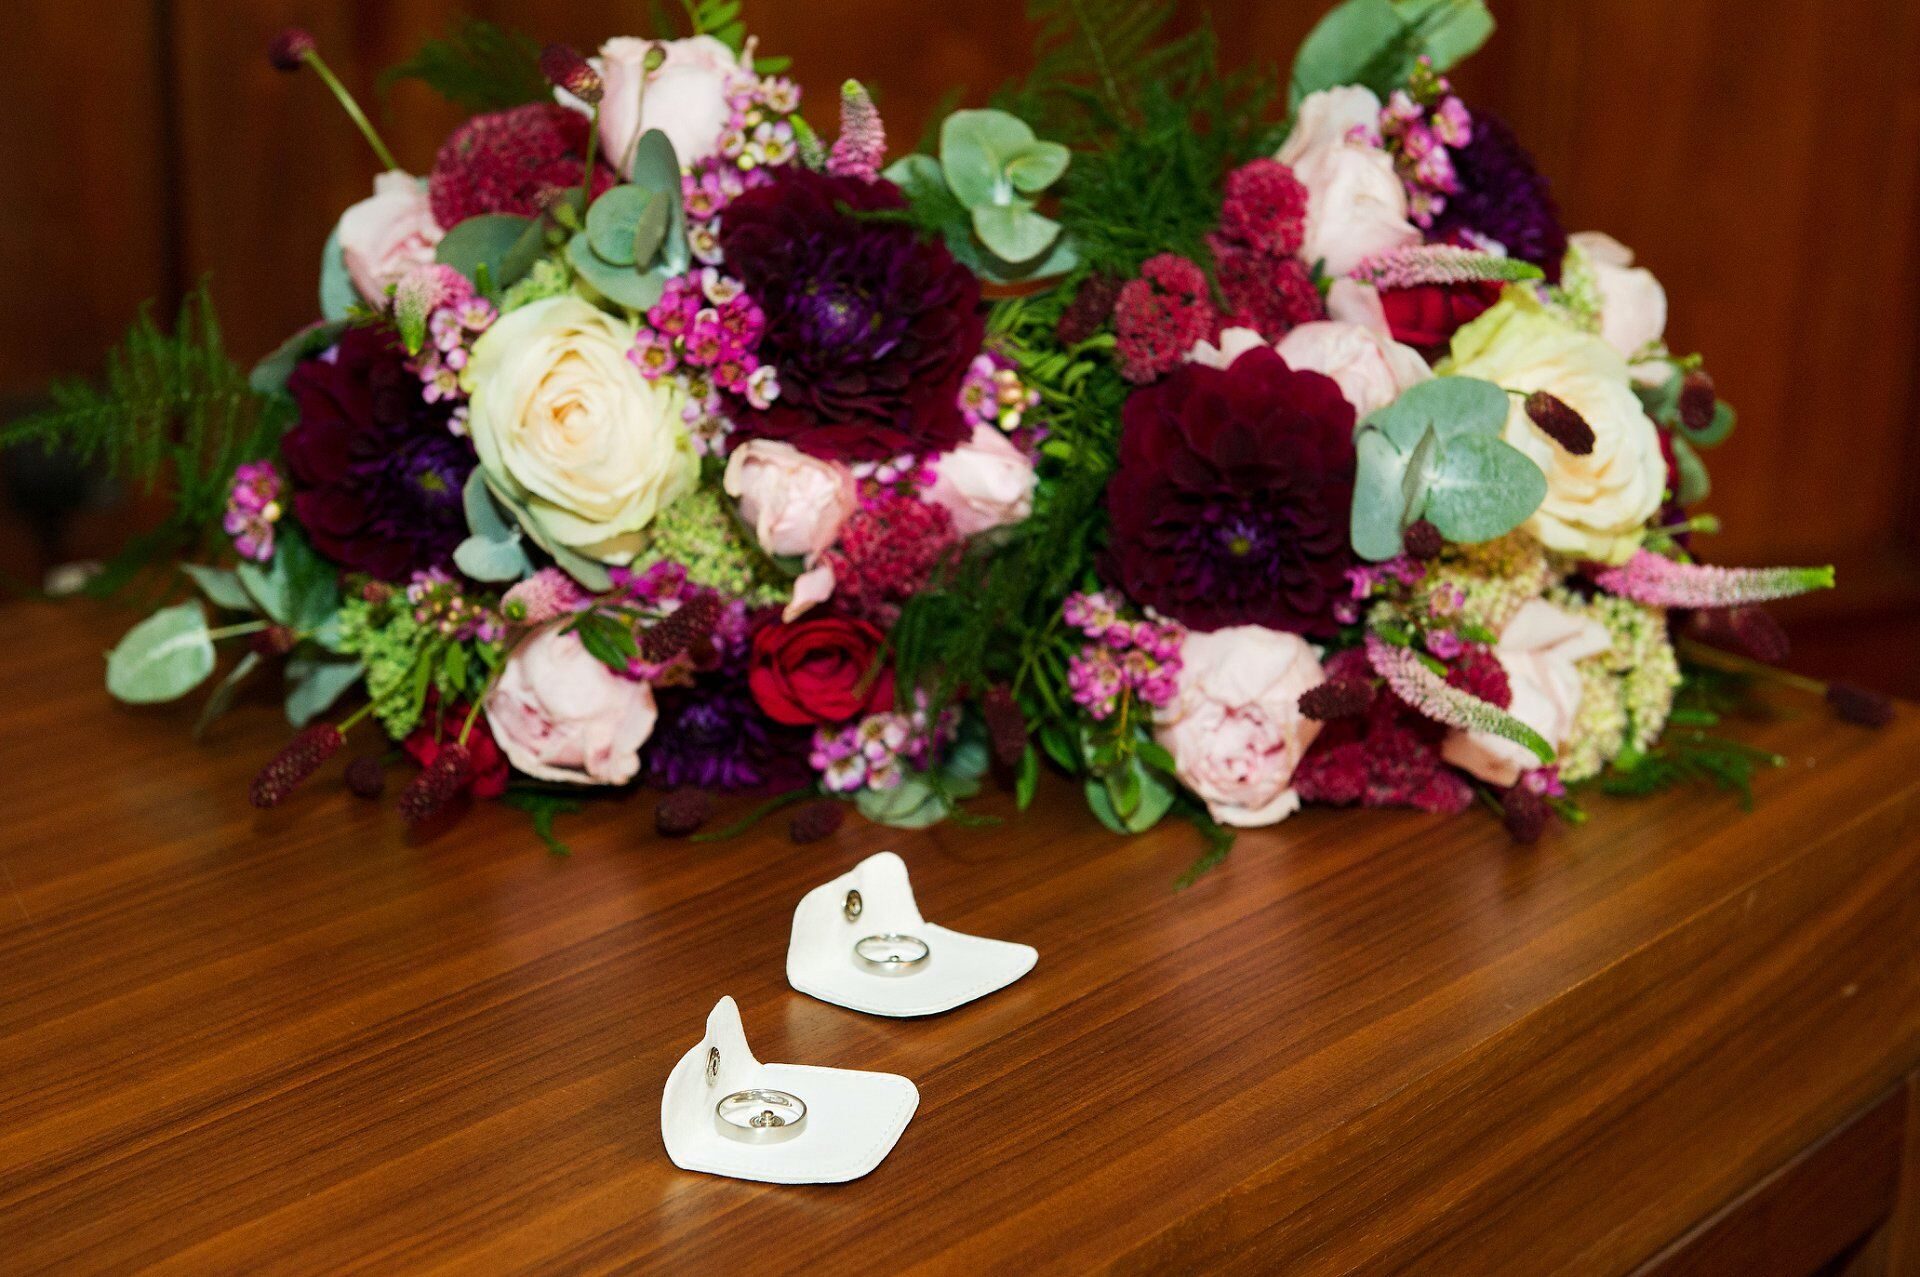 stunning flowers by titanias garden in marylebone and two rings for the two beautiful brides in marylebone registry office's paddington ceremony room